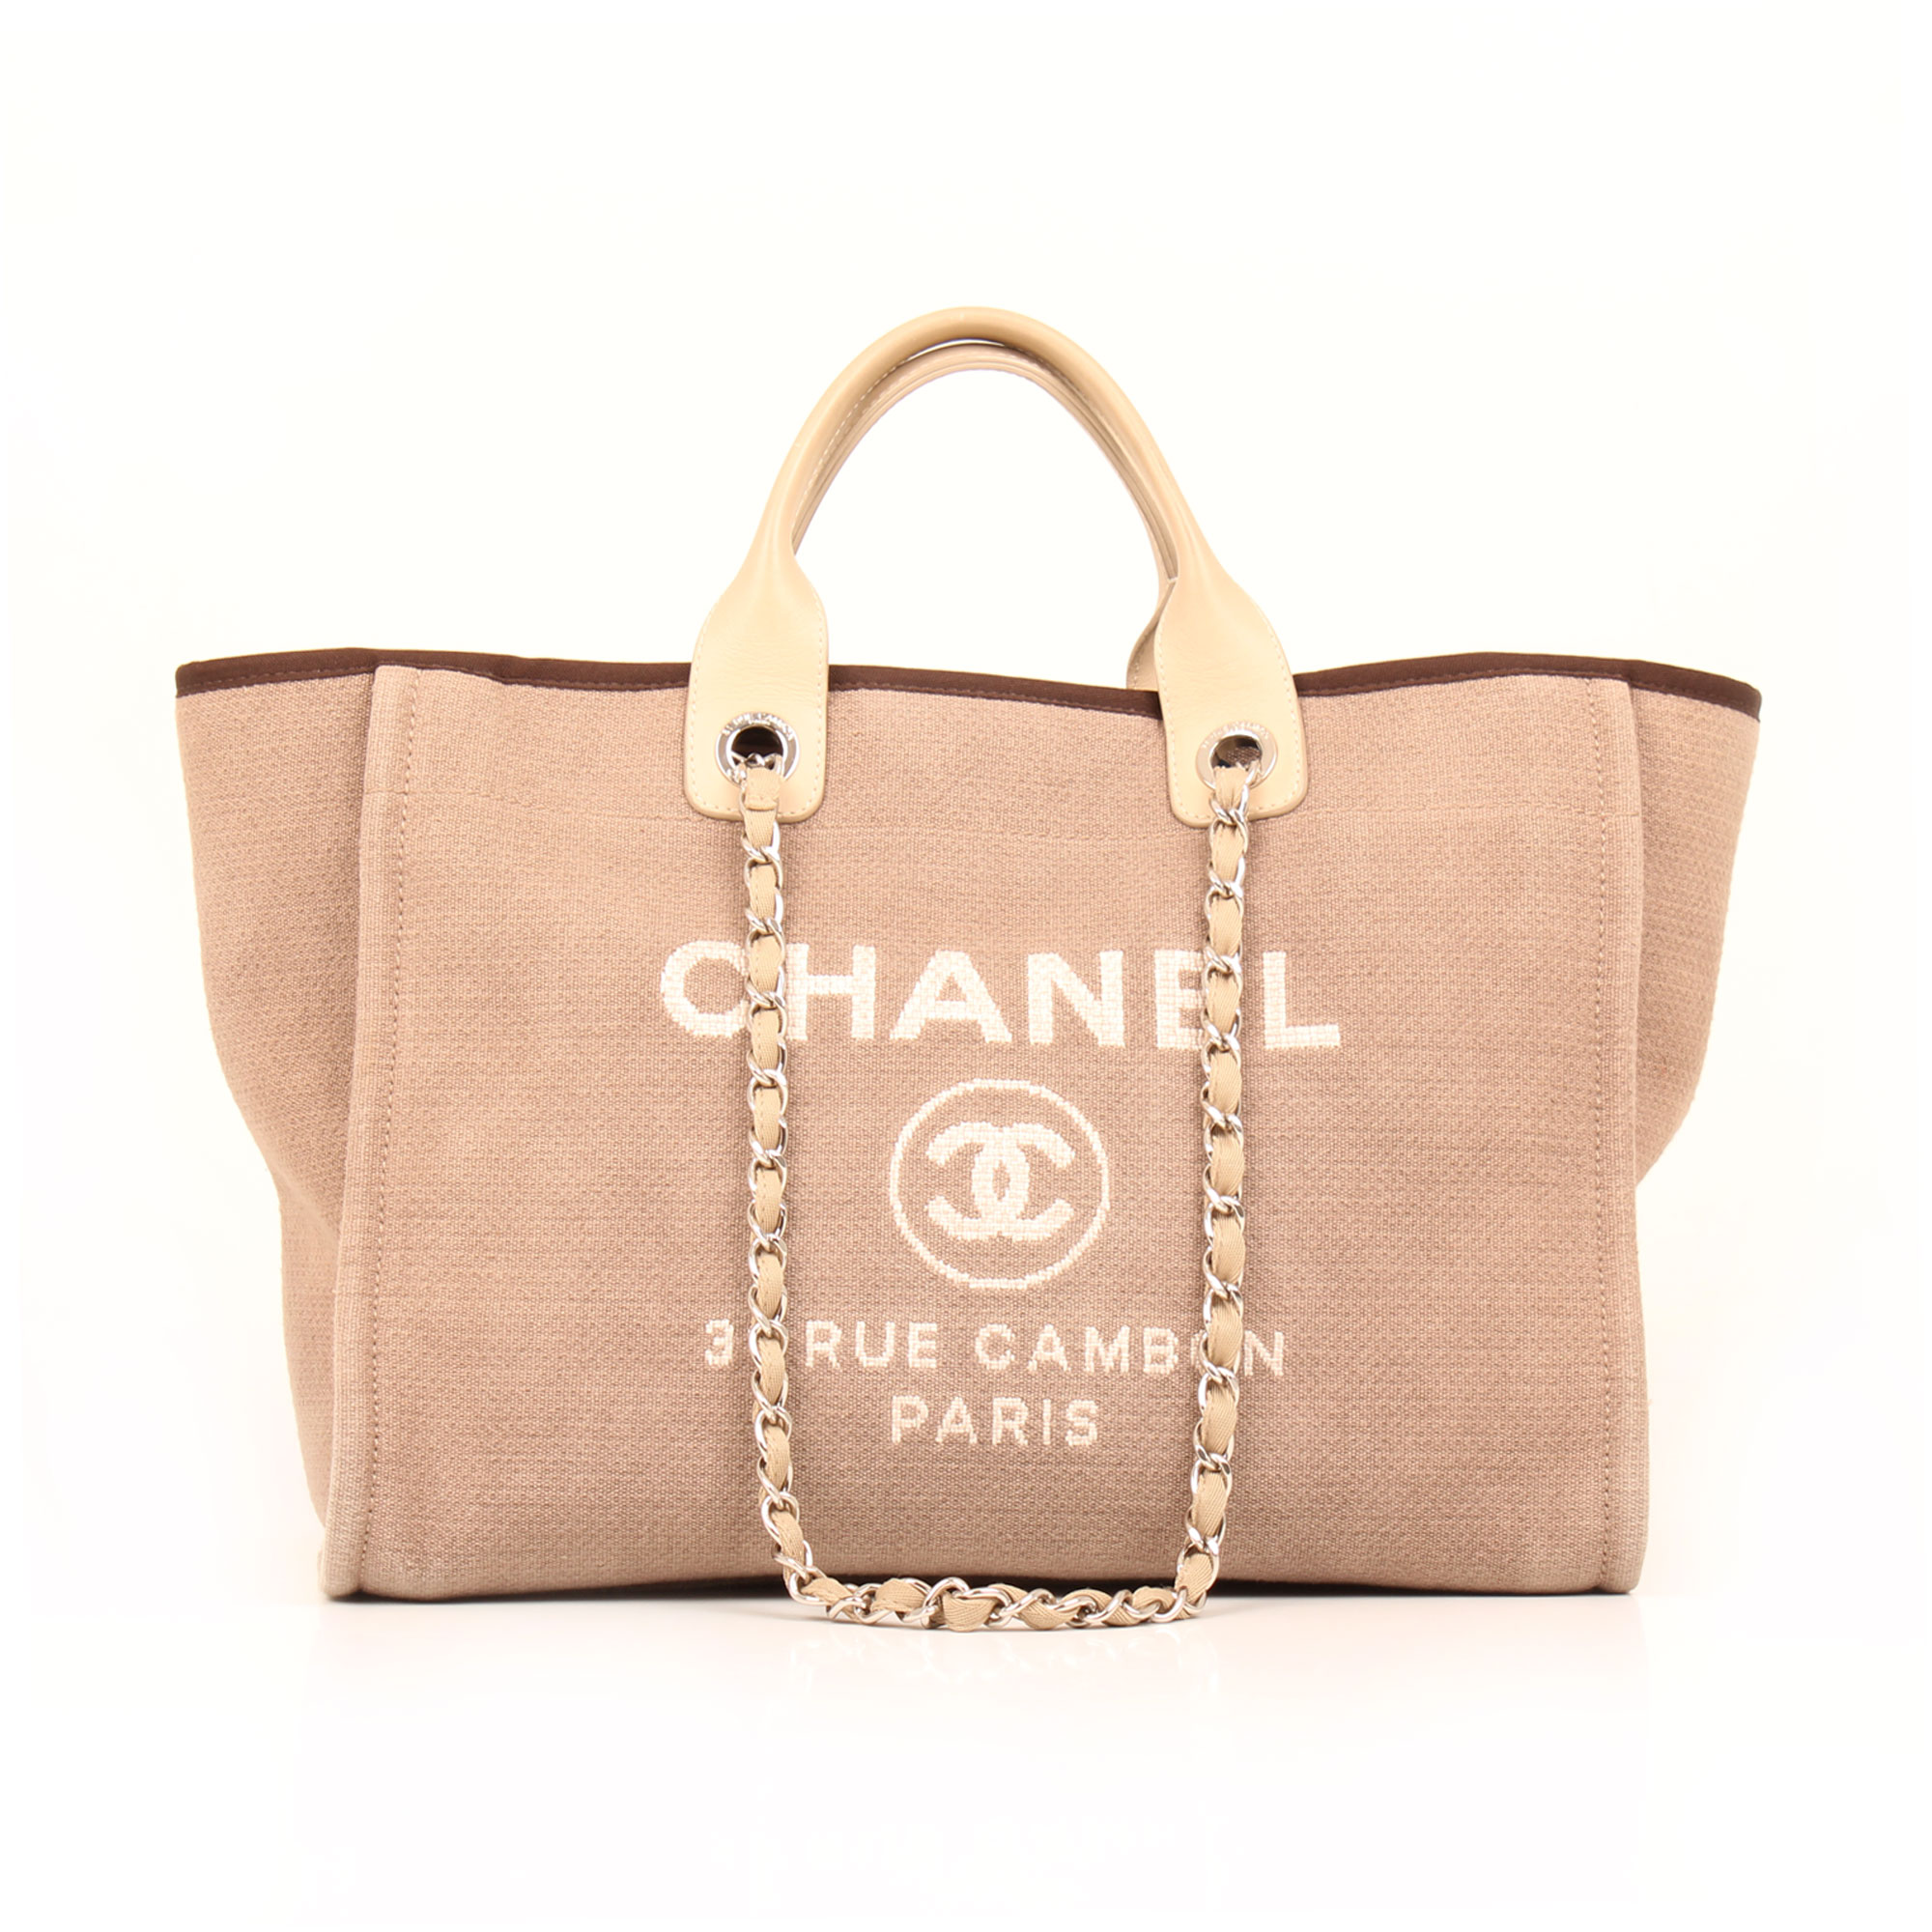 Front image of chanel ecru deauville tote bag